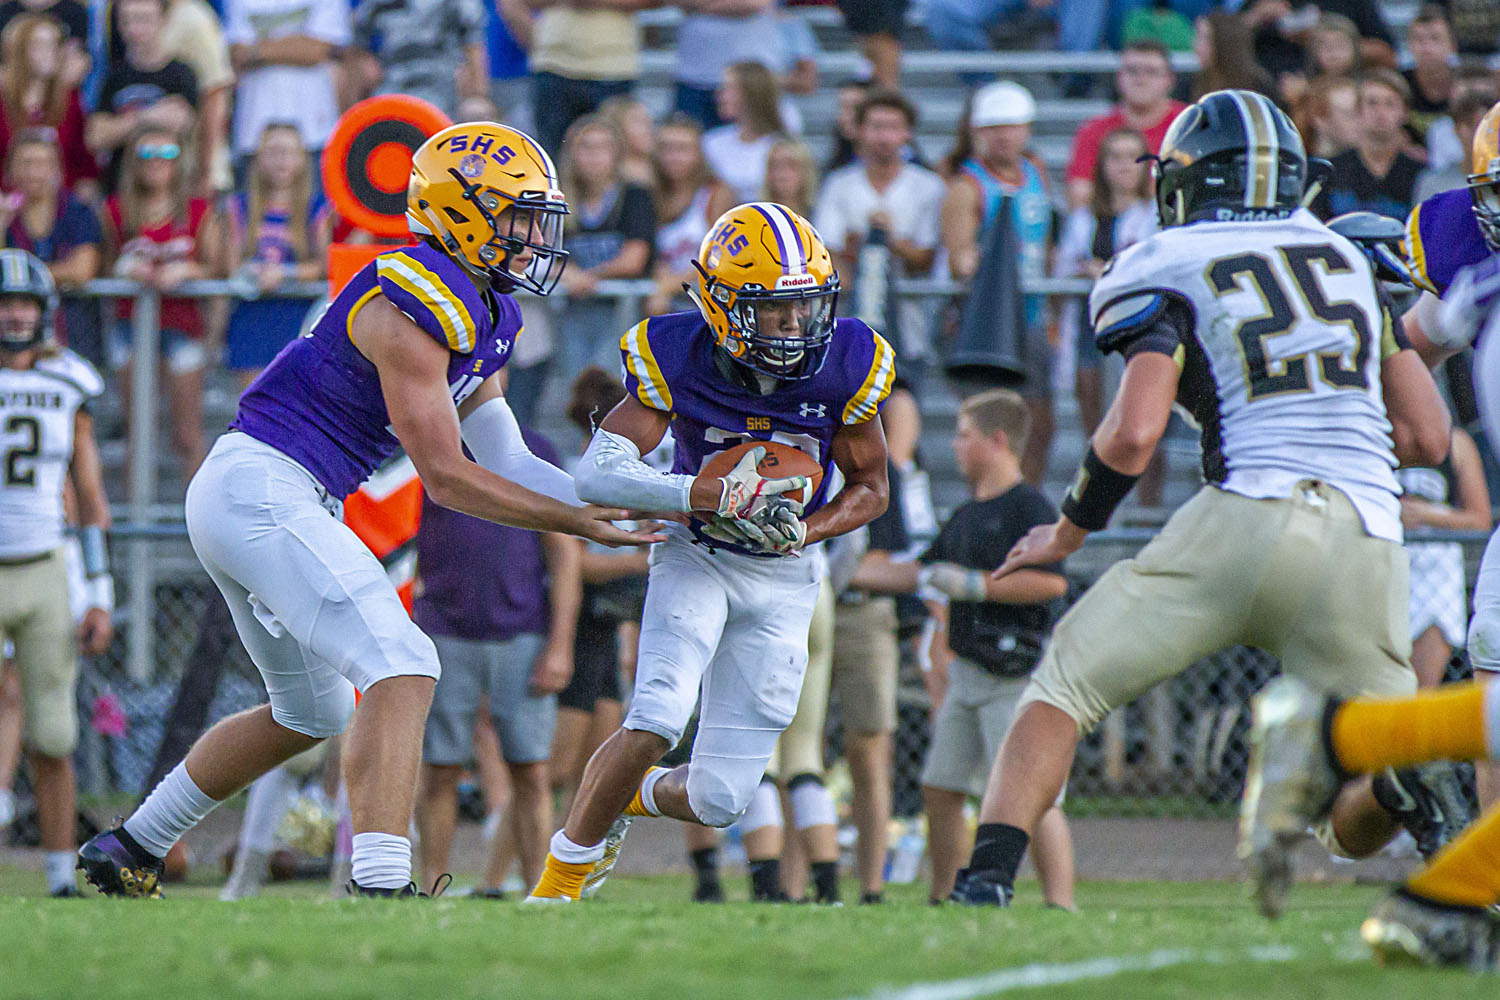 Springville runs through Hayden, 28-6, to take season opener